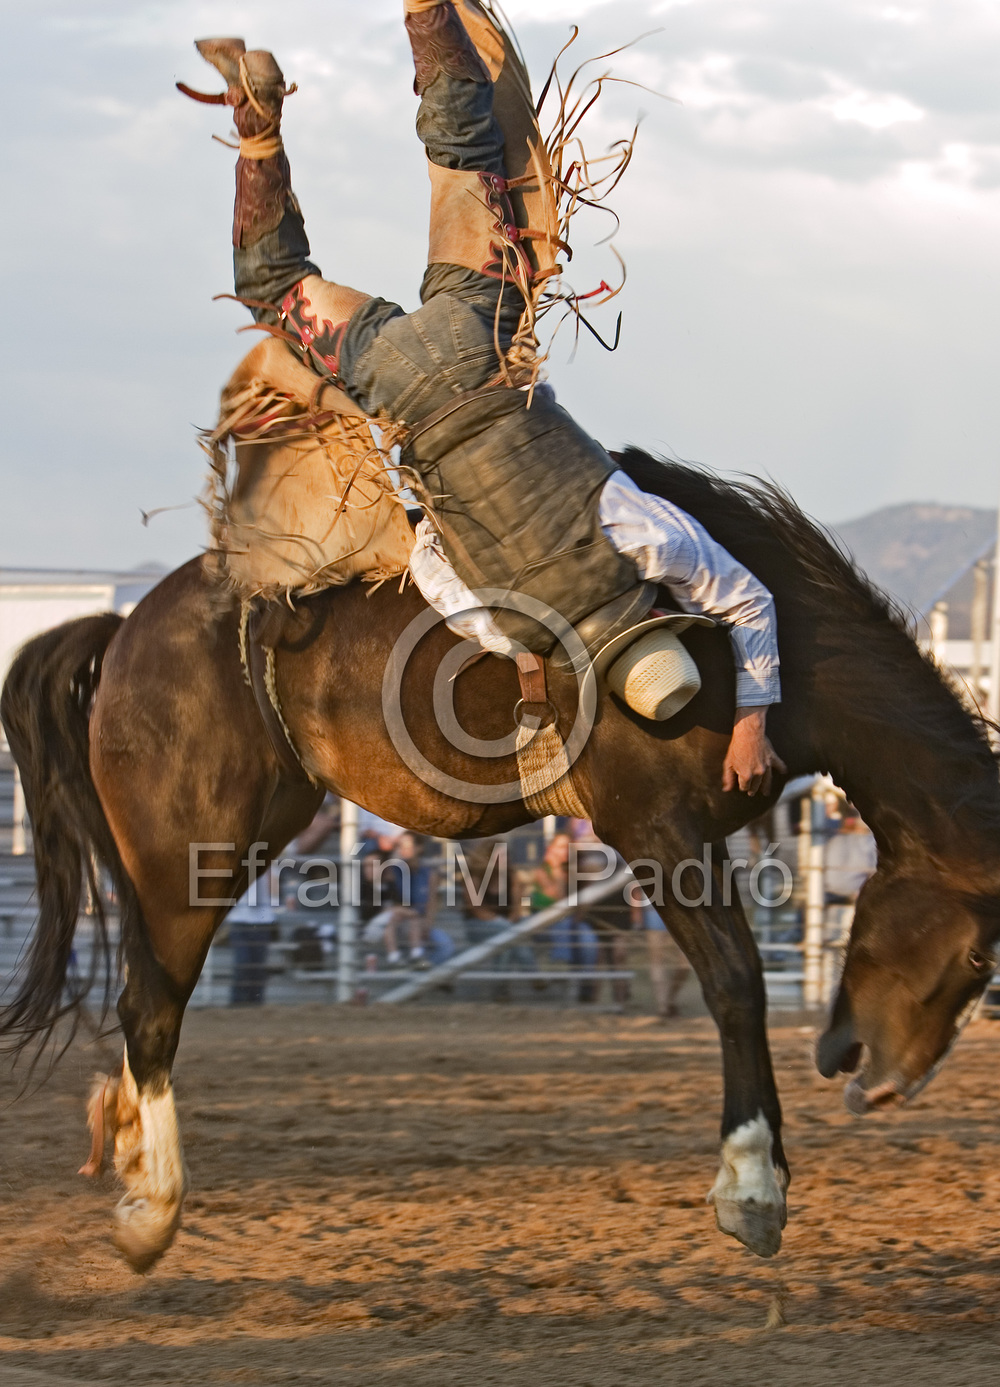 Cowboy upside down on bucking horse, bareback riding competition, Rodeo de Santa Fe, New Mexico